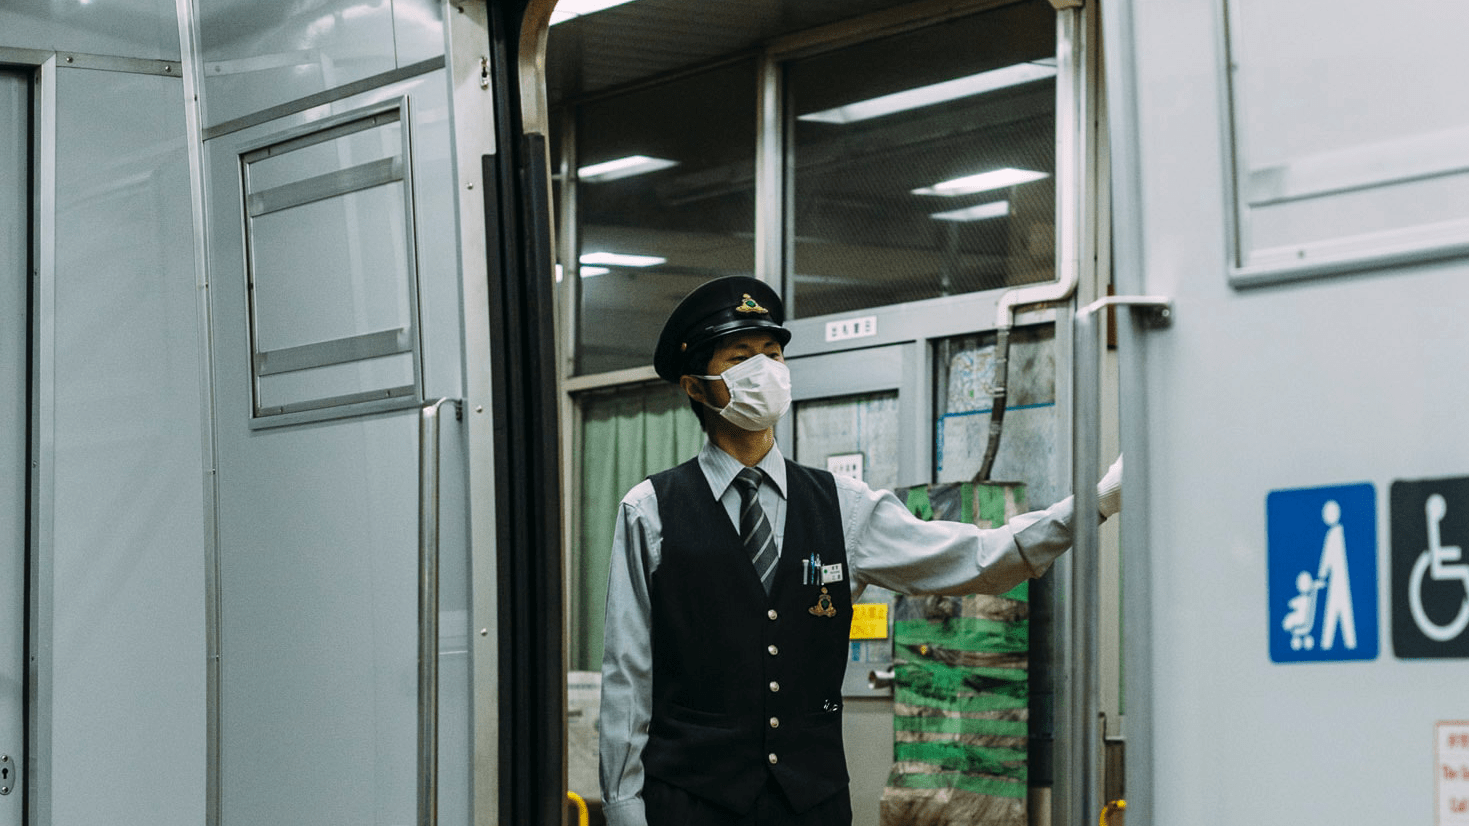 subway conductor wearing a mask